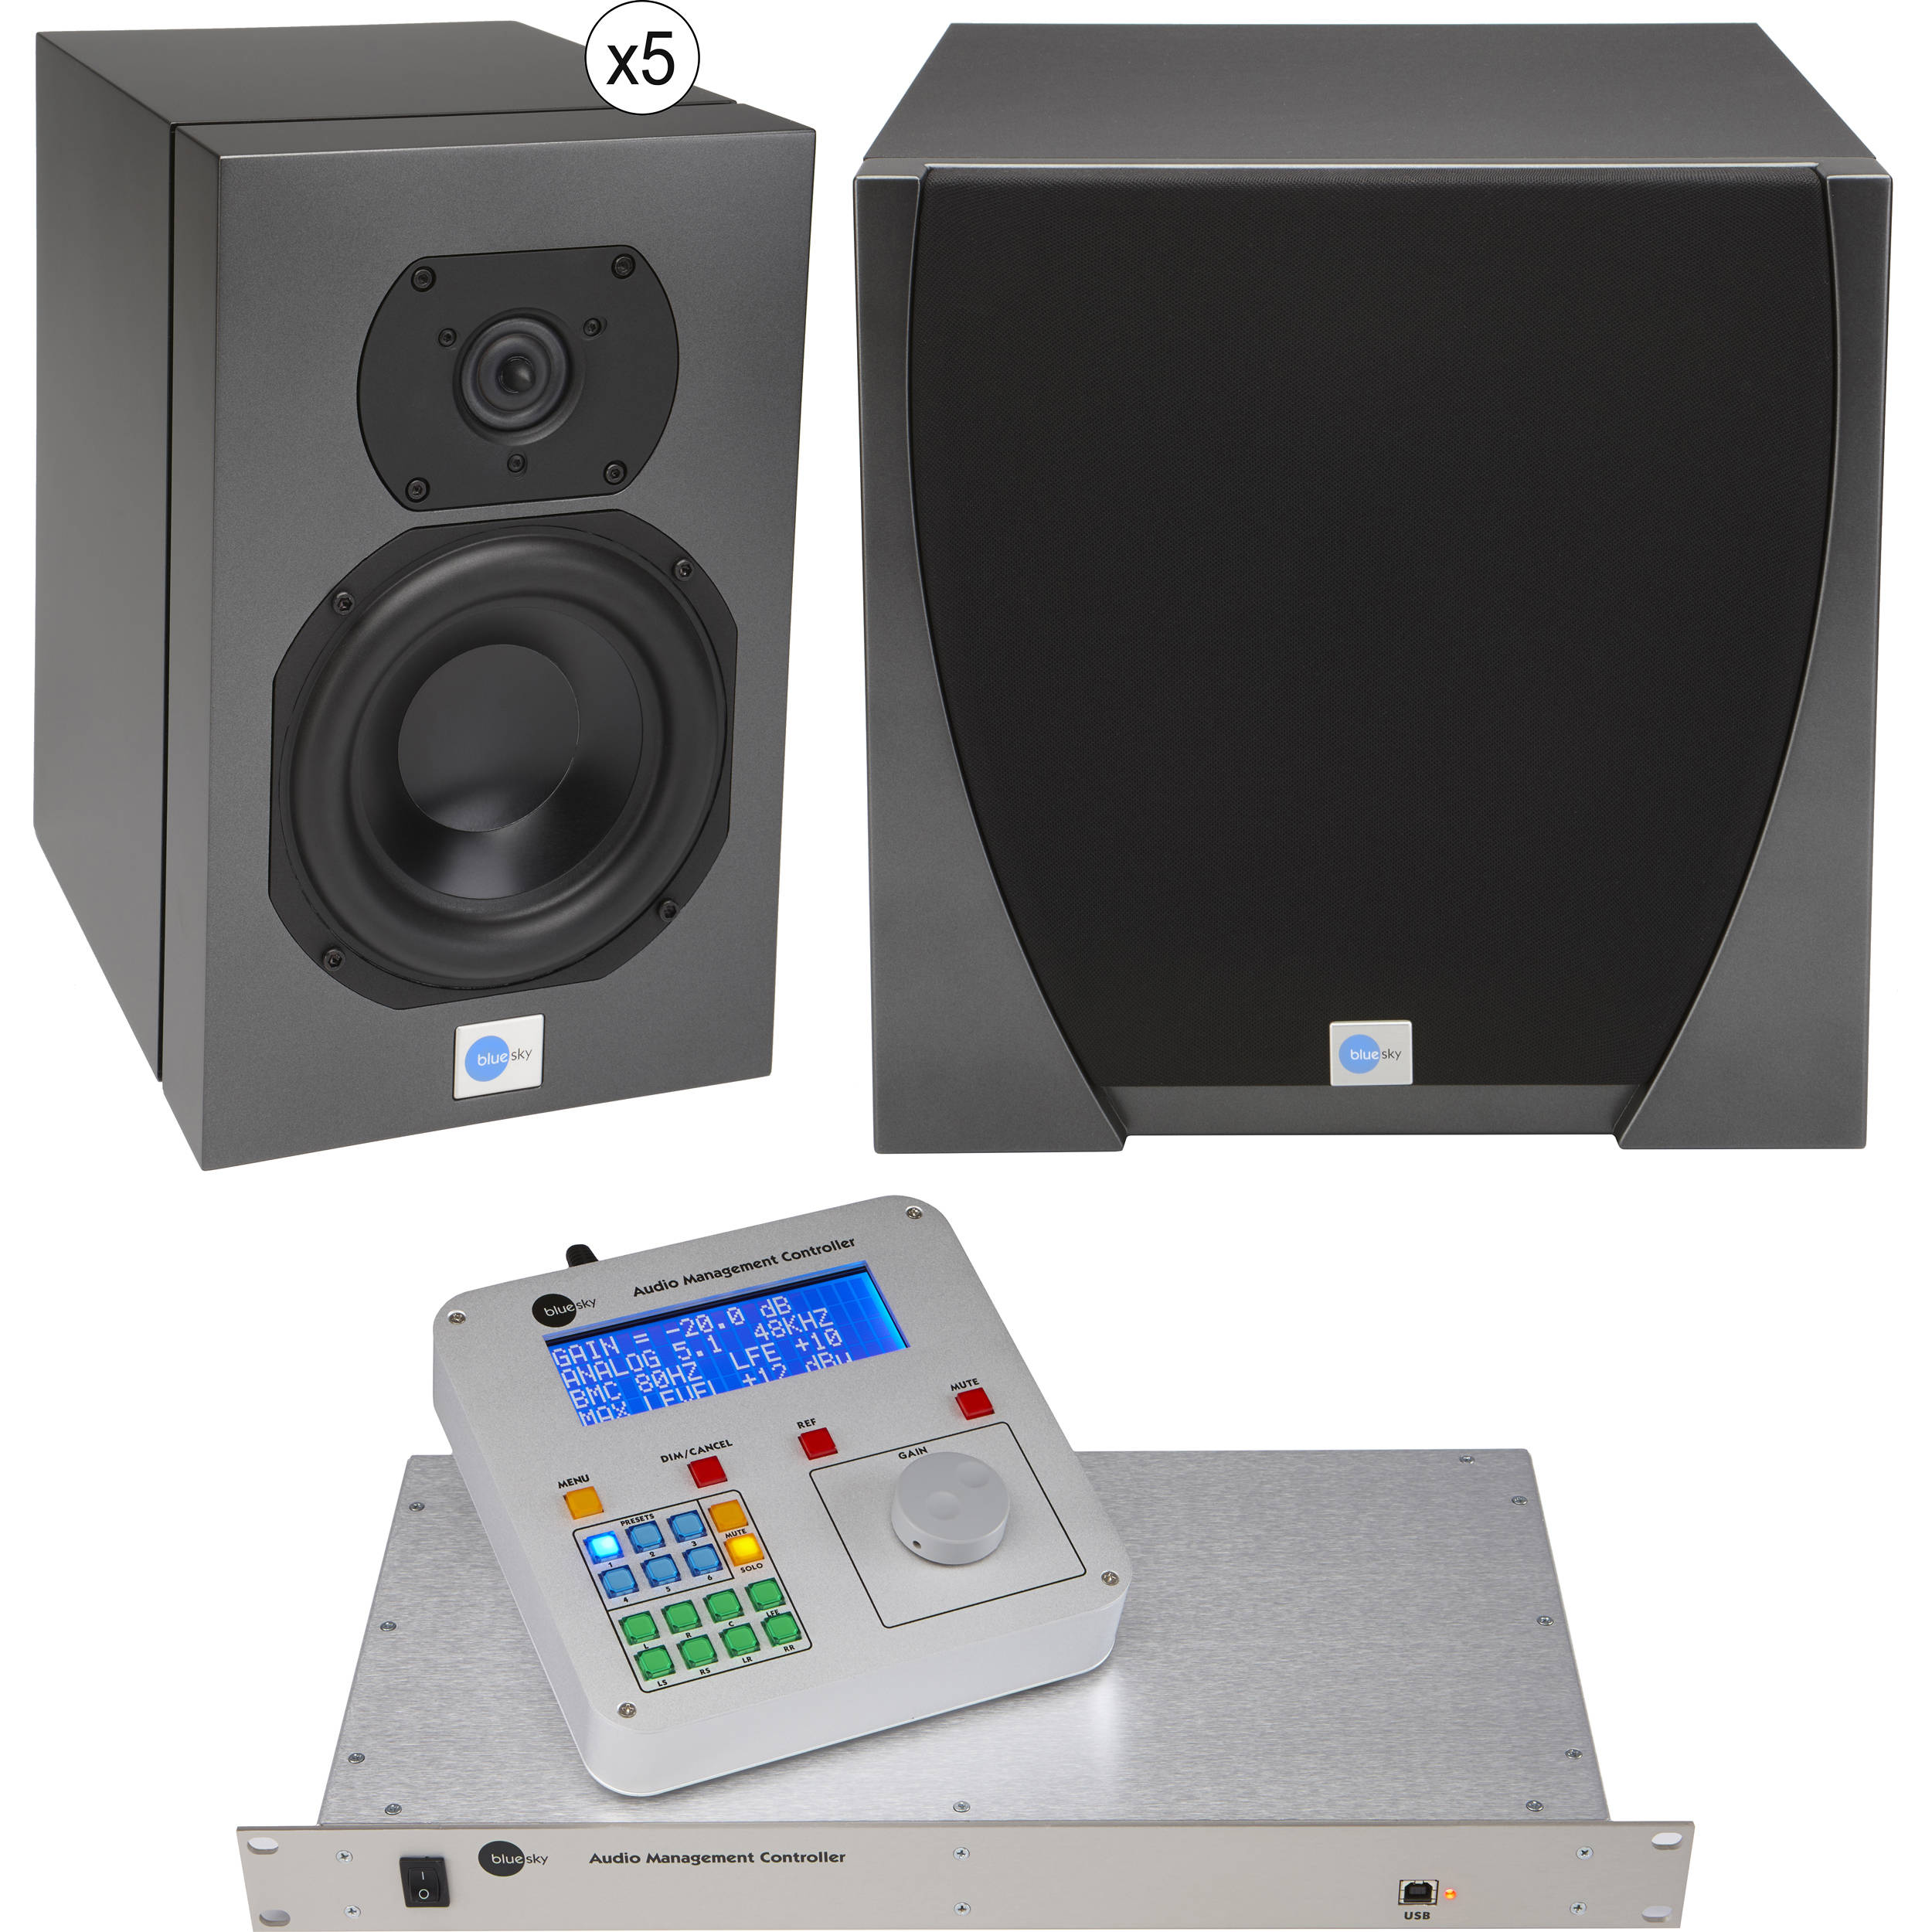 Blue Sky International Star 51 Stereo Subwoofer System Active Crossover Electronic Design With Audio Management Controller